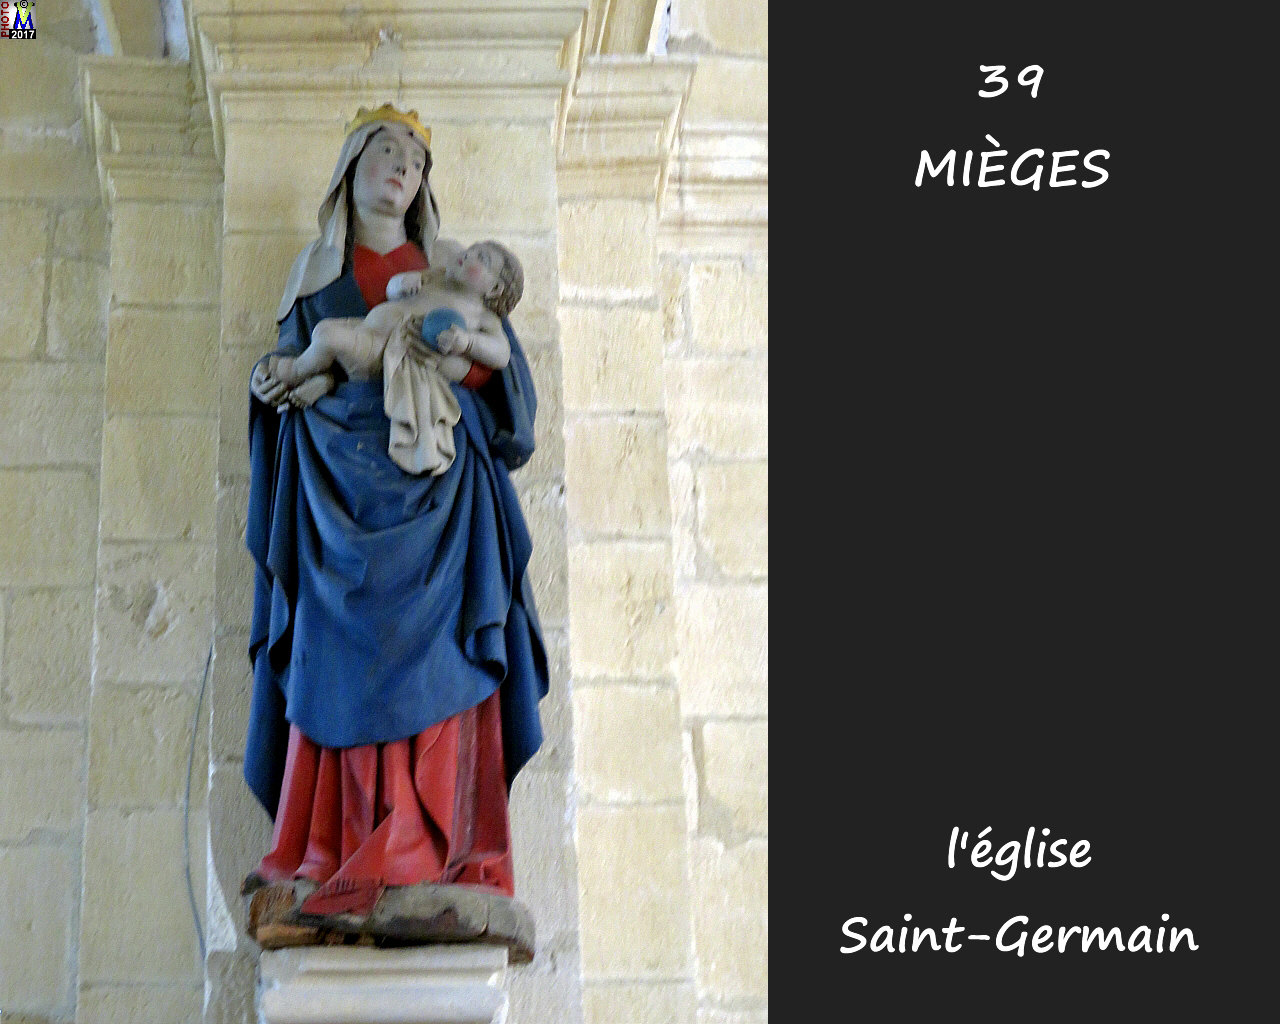 39MIEGES_eglise_264.jpg